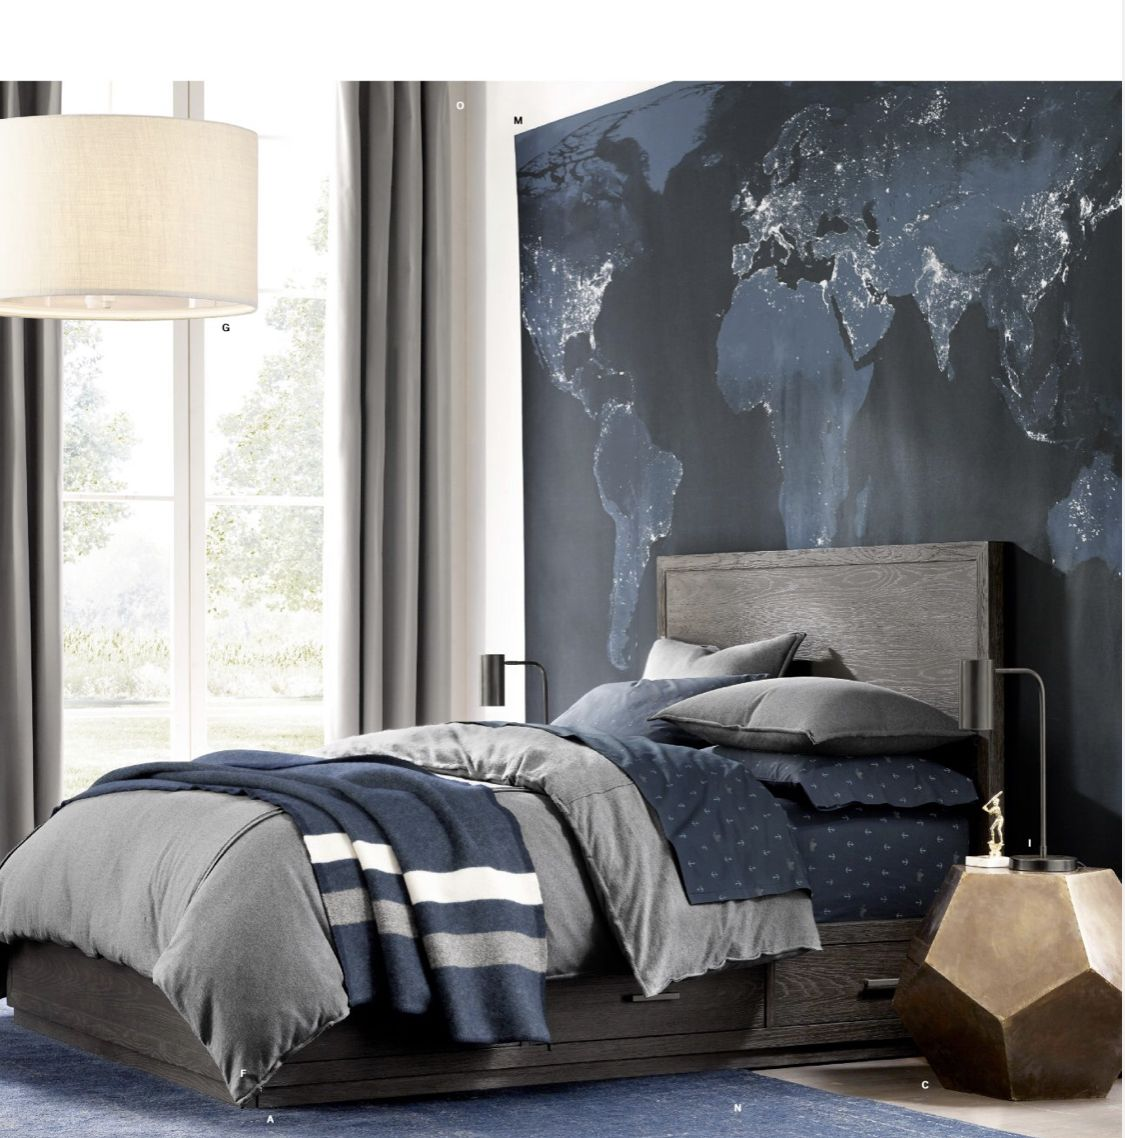 Pin by Candis Garcia on Kids Rooms Inspiration | Boys ... on Beige Teen Bedroom  id=25878